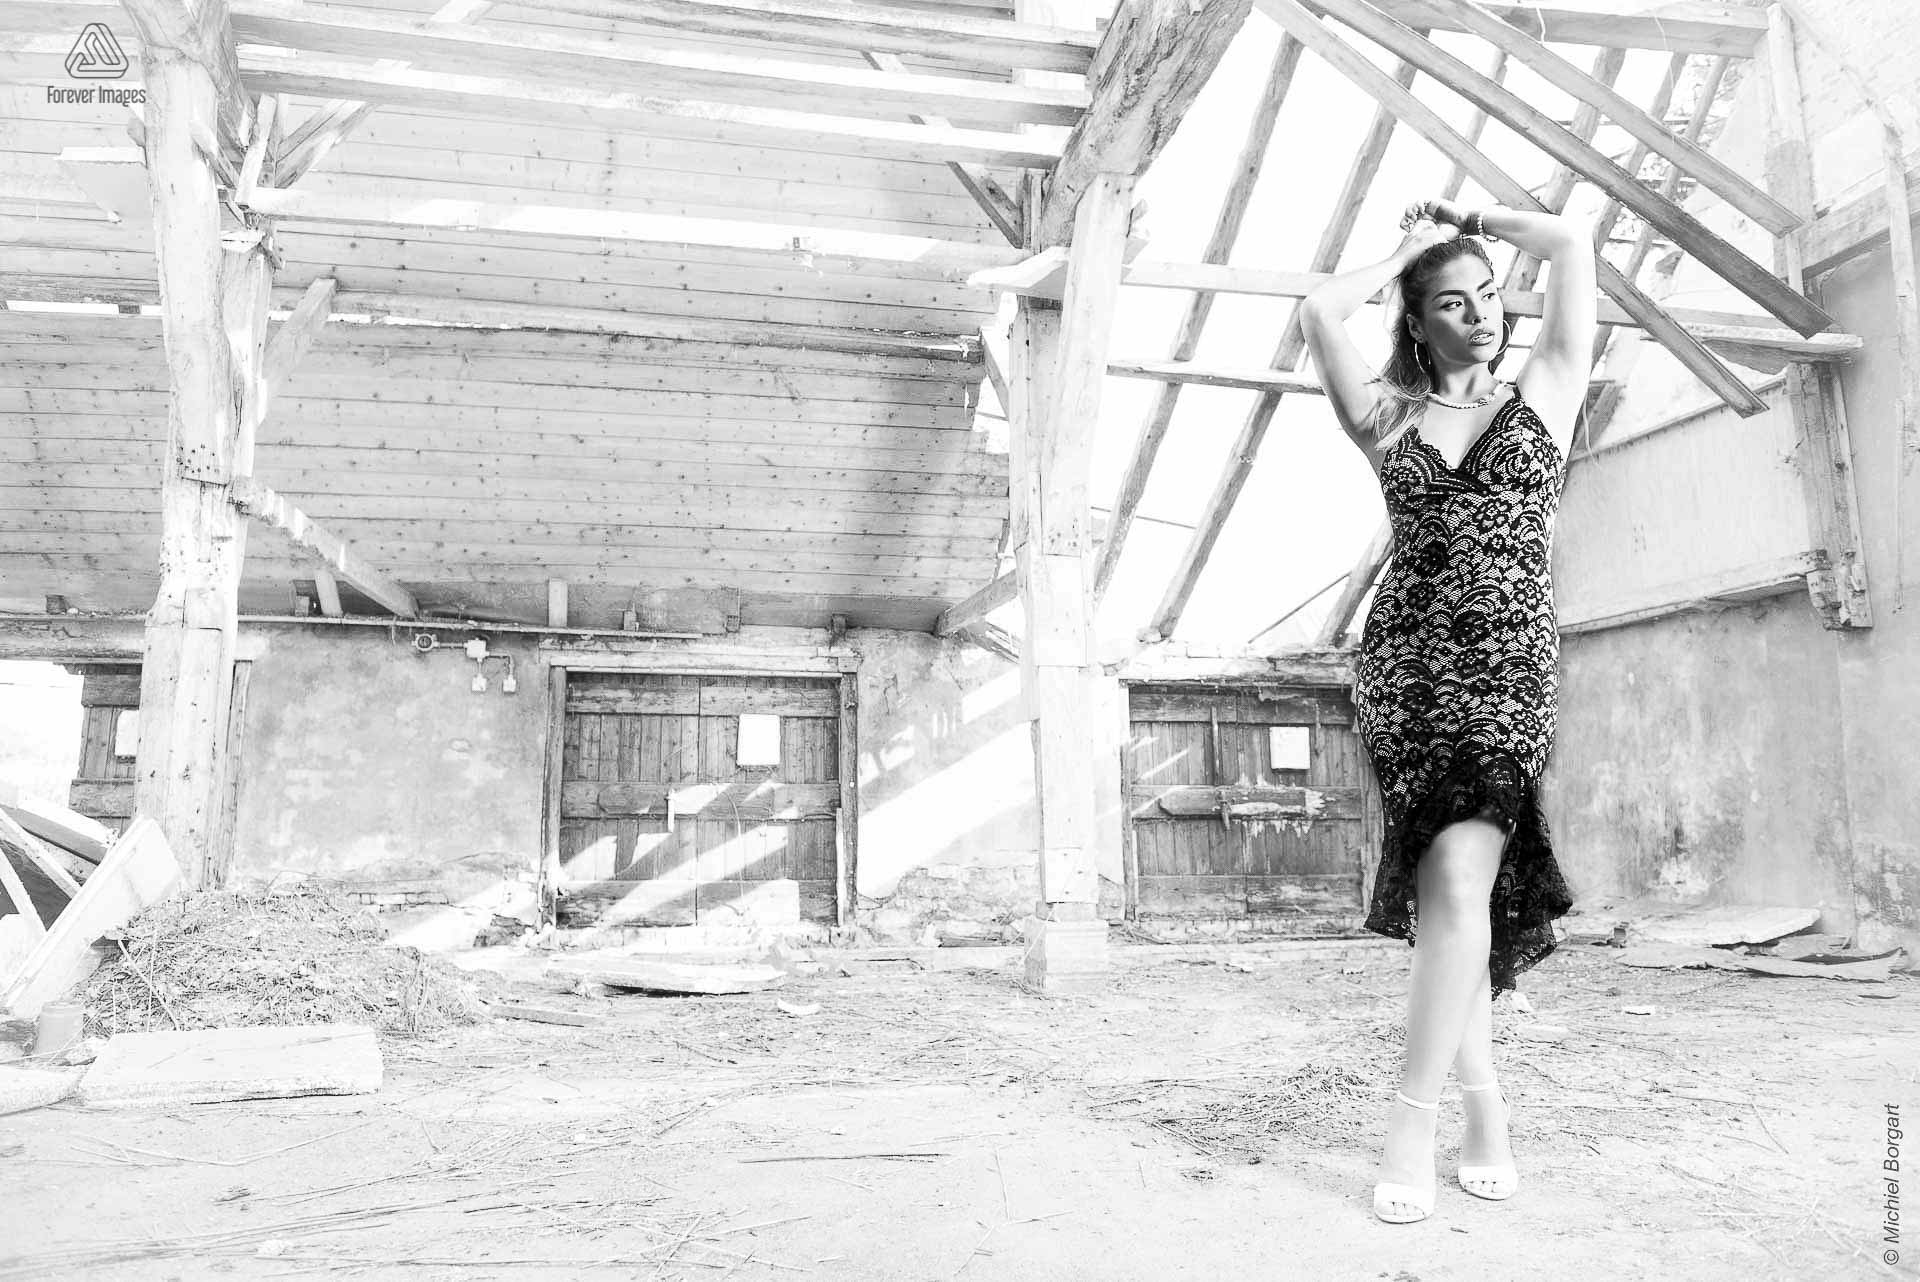 Portrait photo urbex black and white beautiful lady in dilapidated shed | Floriana Horta | Portrait Photographer Michiel Borgart - Forever Images.